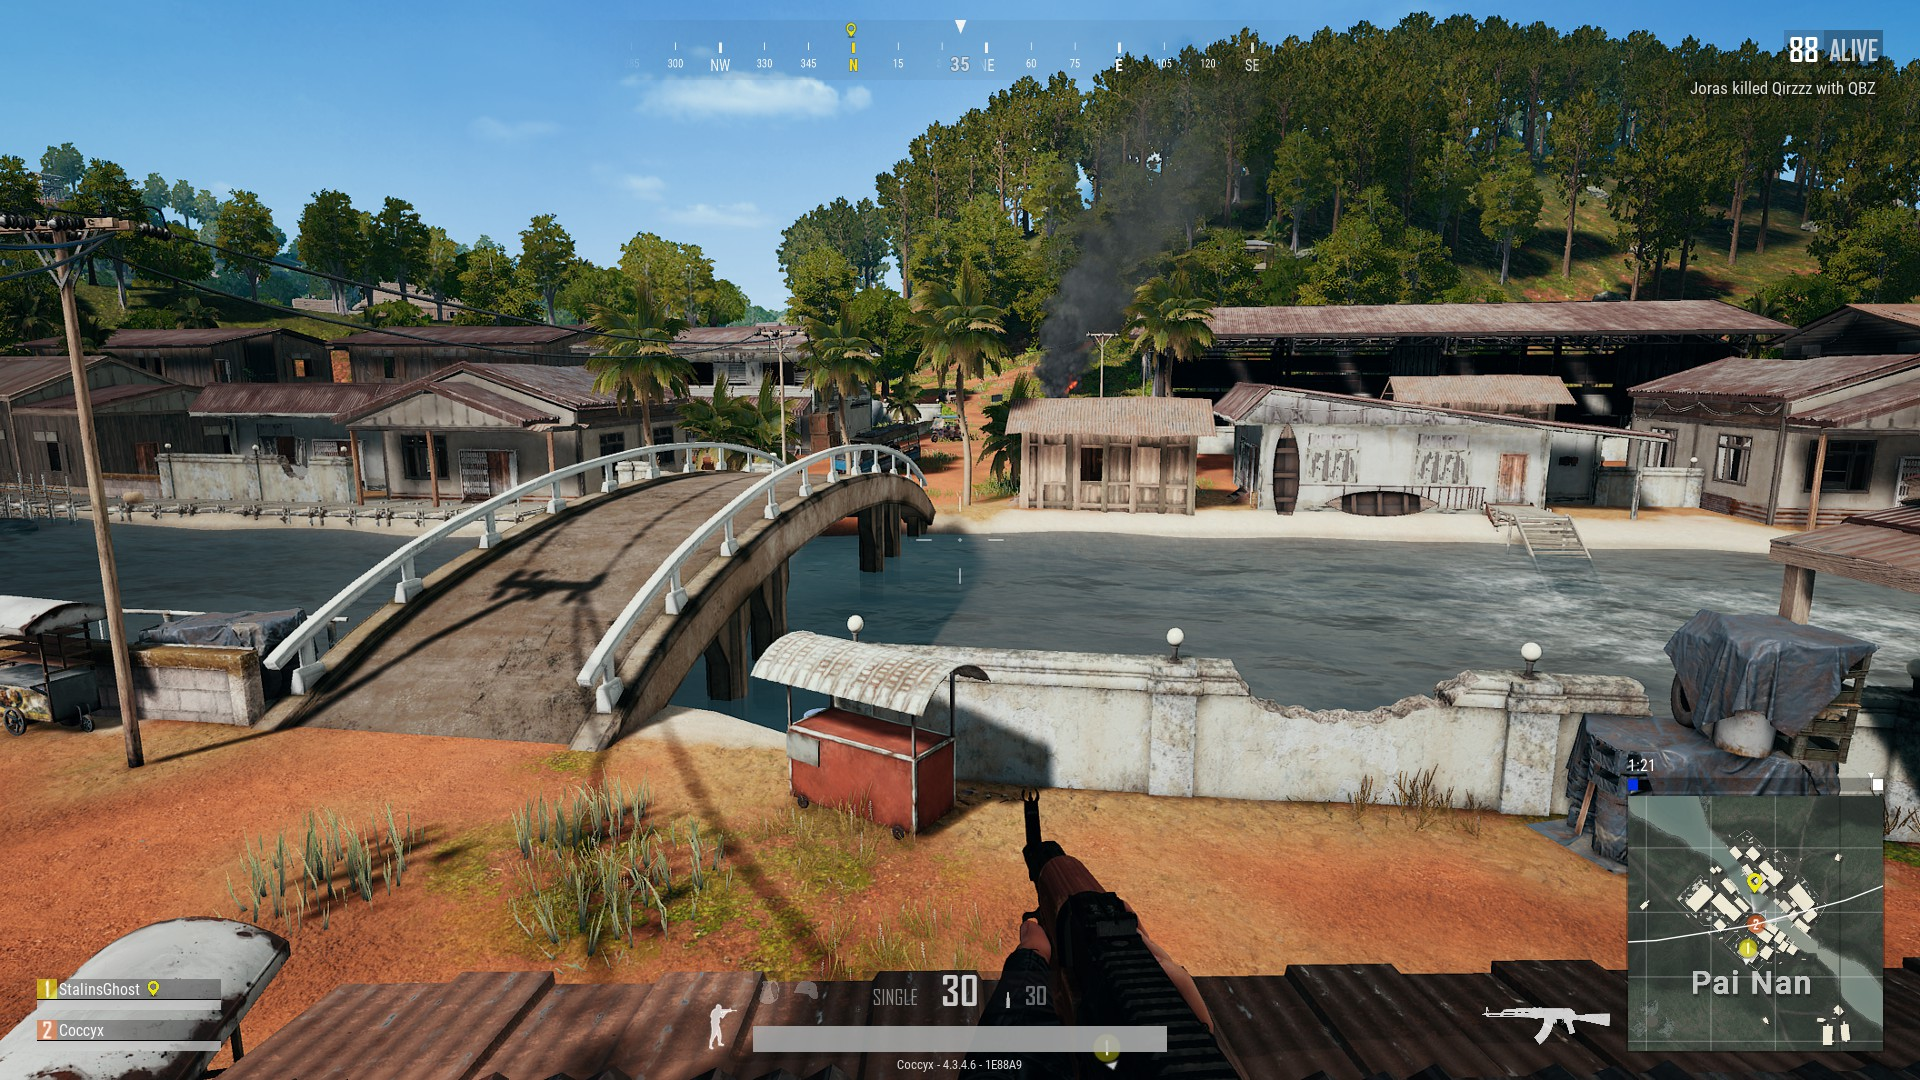 Pubg Sanhok Wallpapers Playerunknown S Battlegrounds Guide Tips And Tricks To